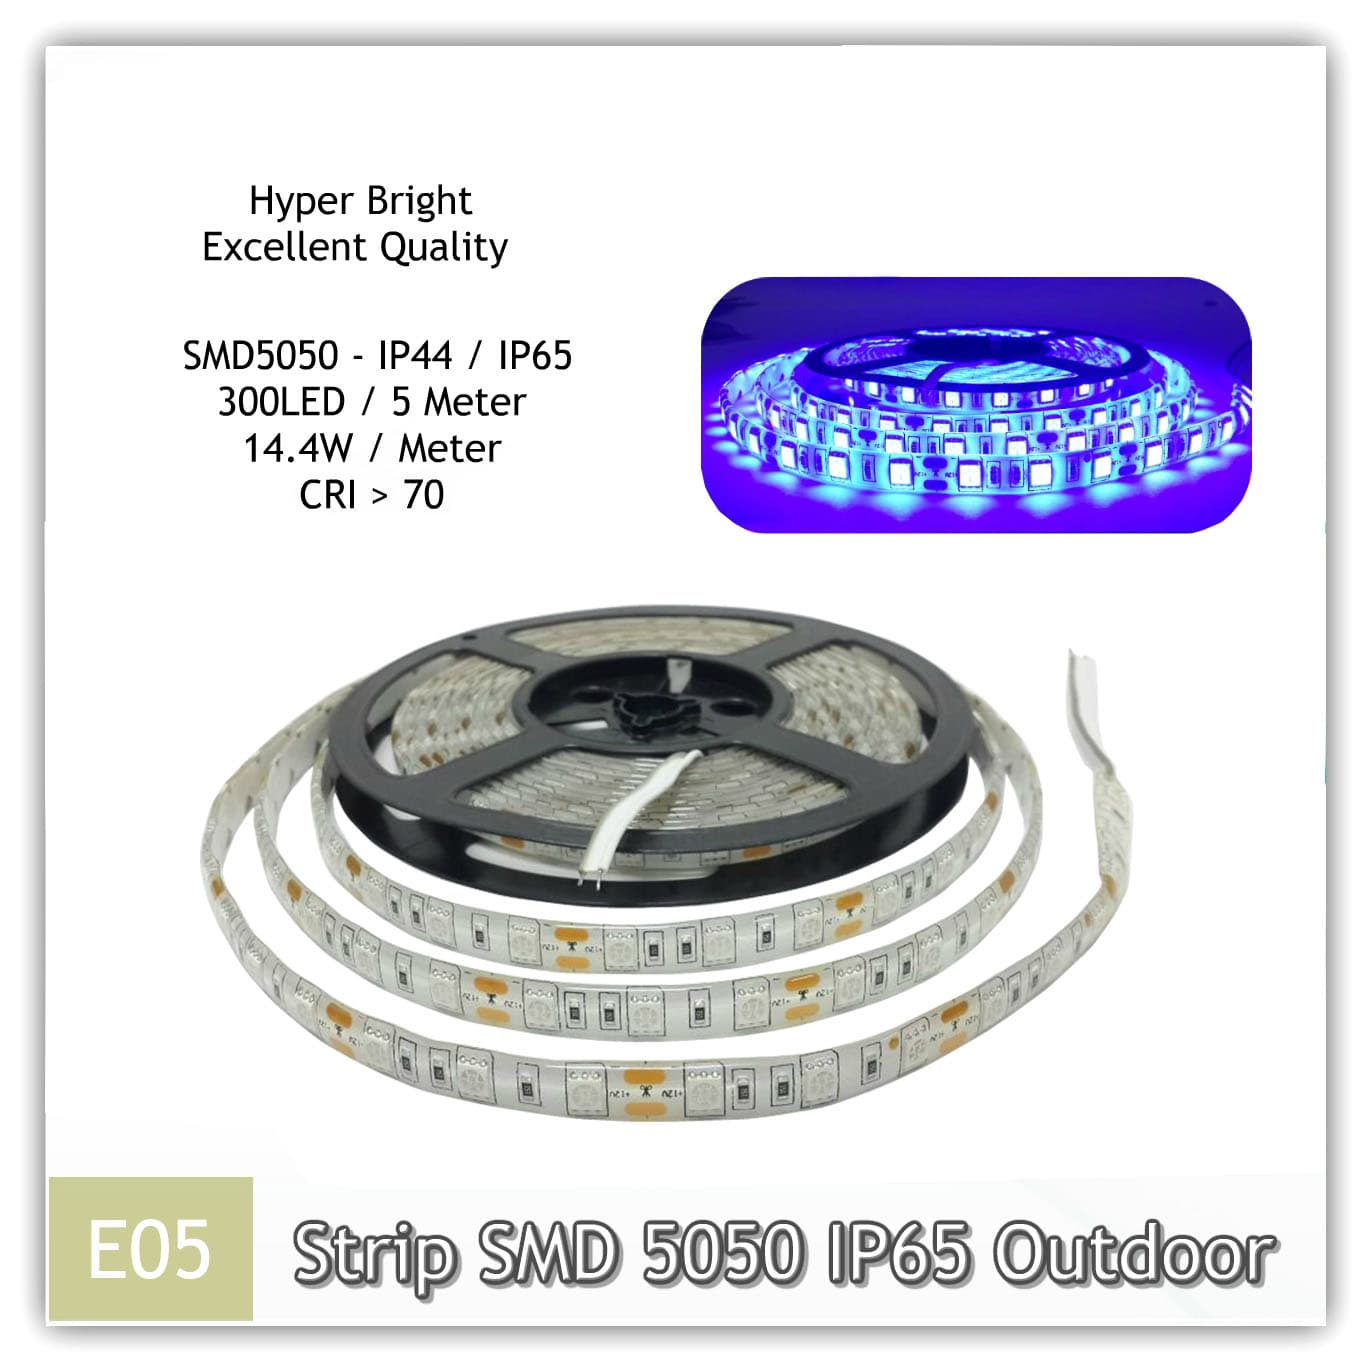 Jual Lampu LED STRIP SMD 5050 Outdoor IP65 / IP44 12V